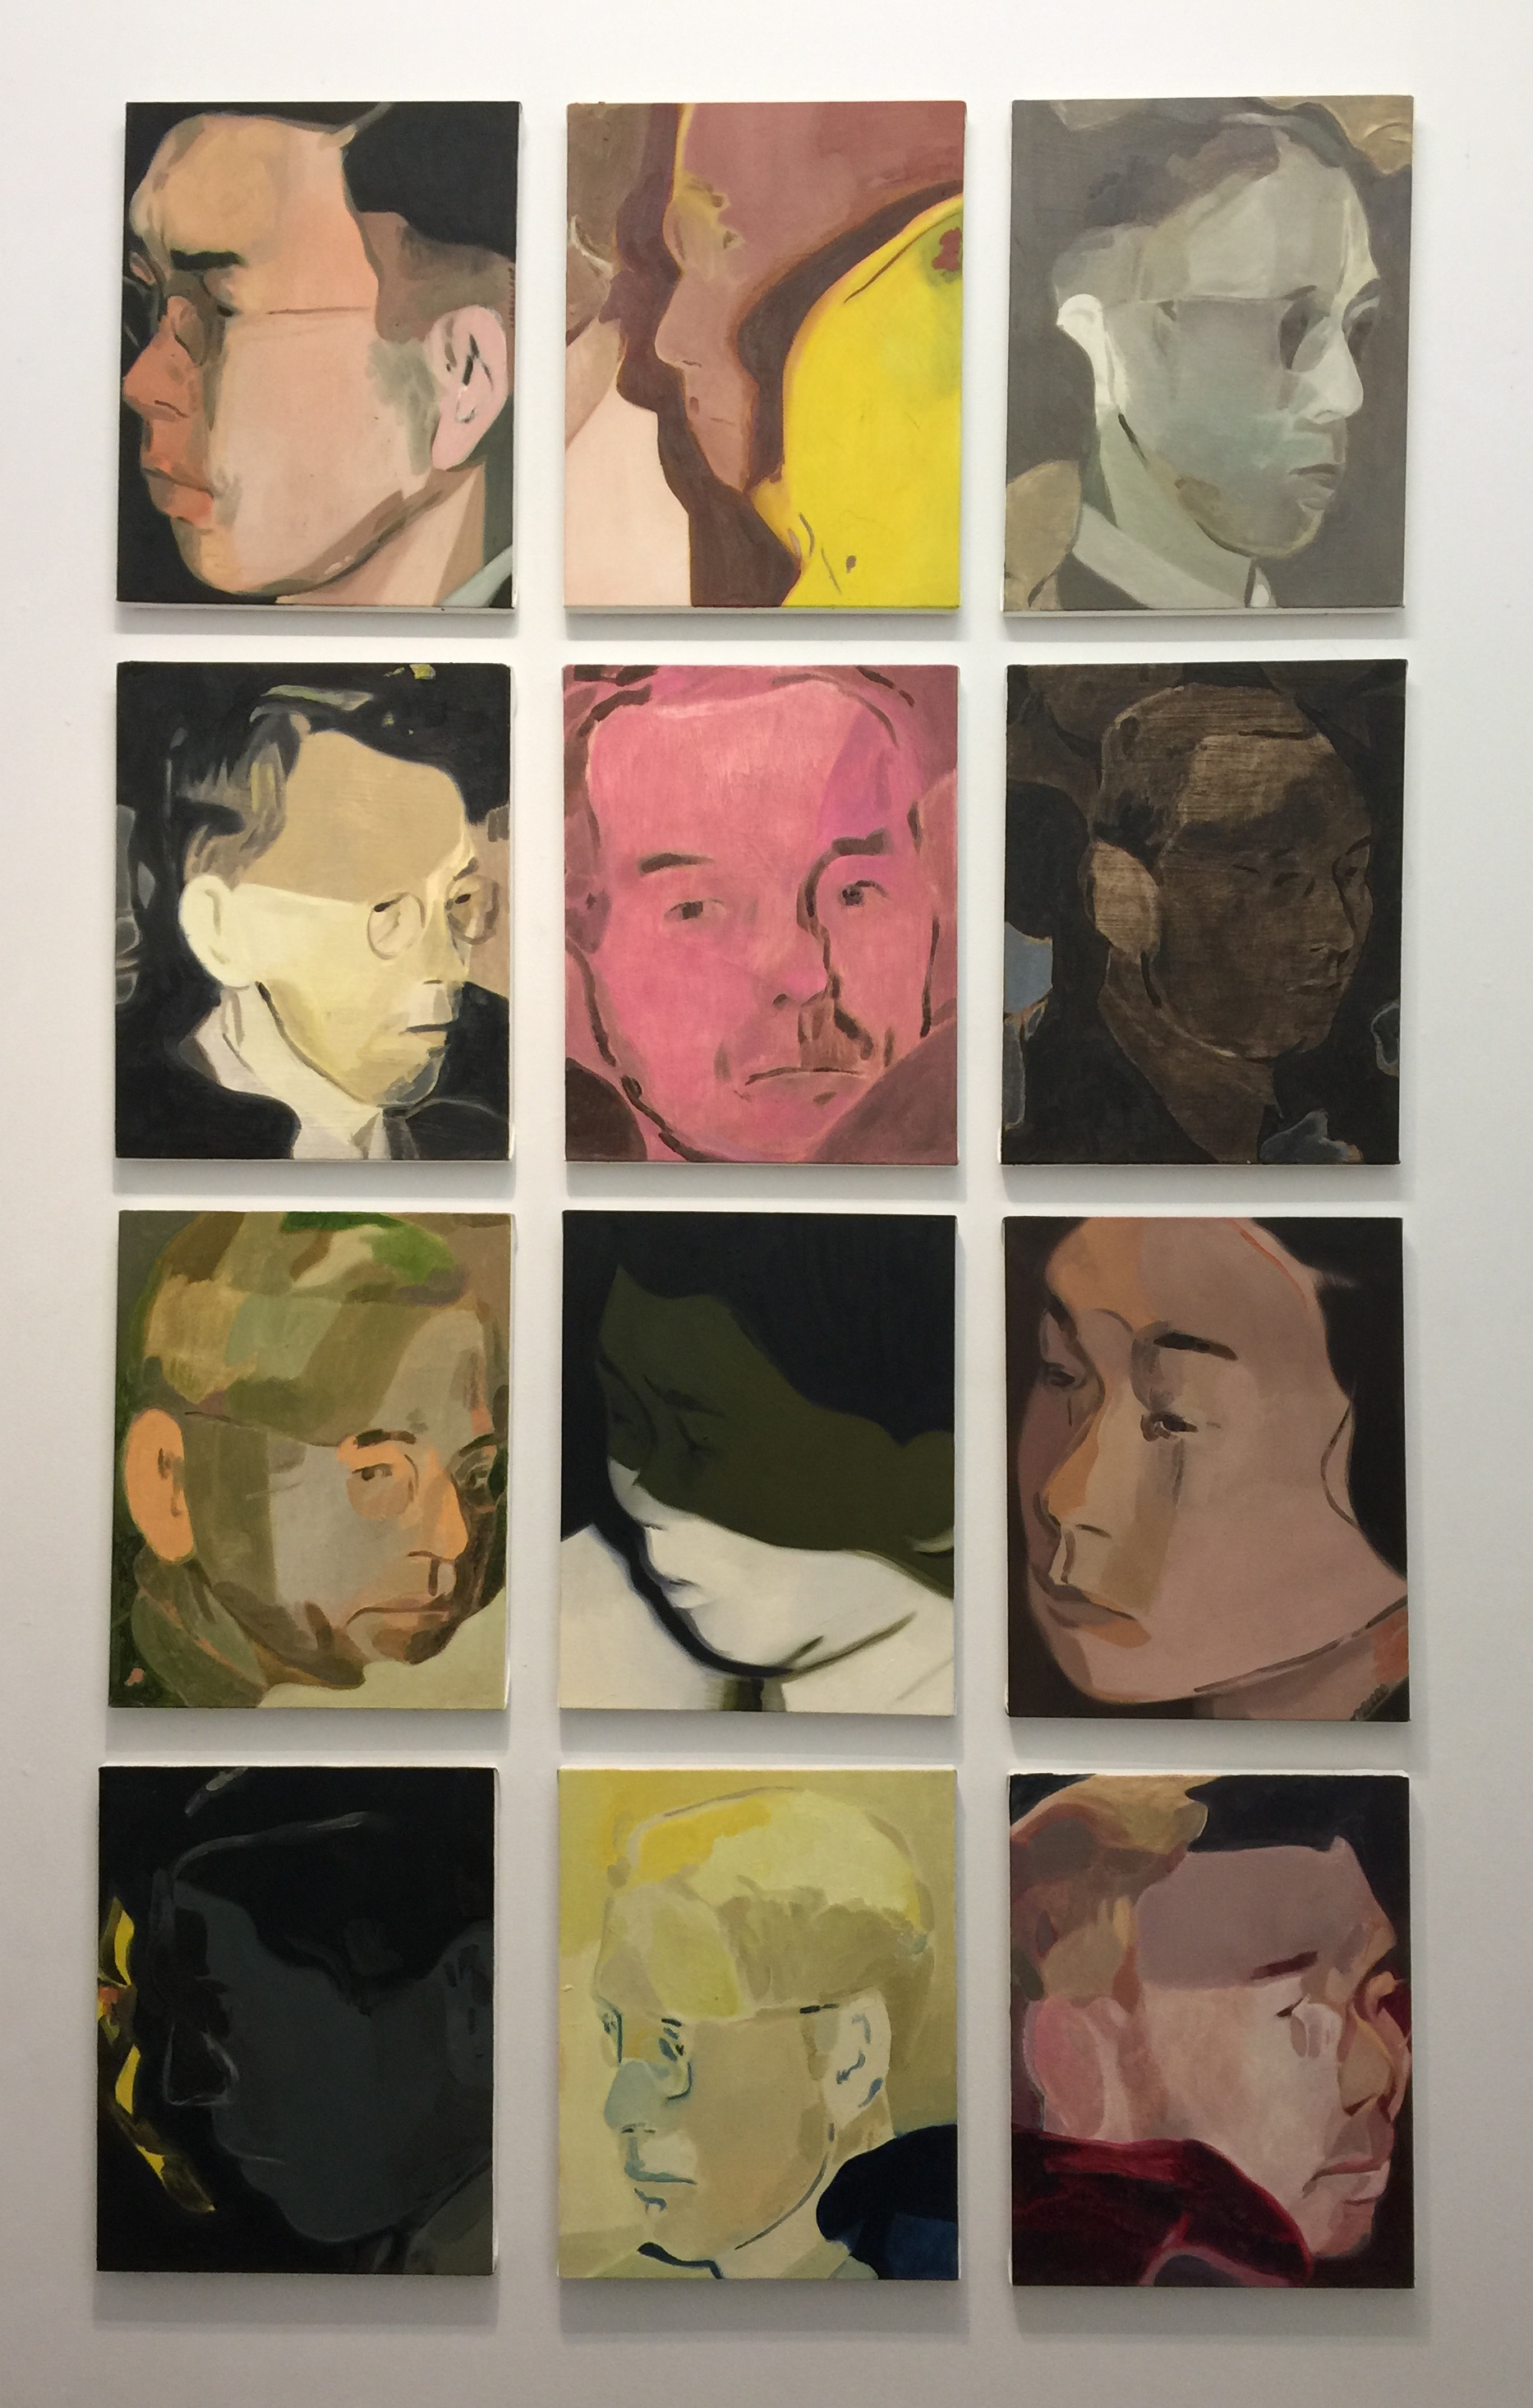 Anthony Cudahy,Everyone at the Funeral series,2015-ongoing,oil on canvas,19 x 15 inches each